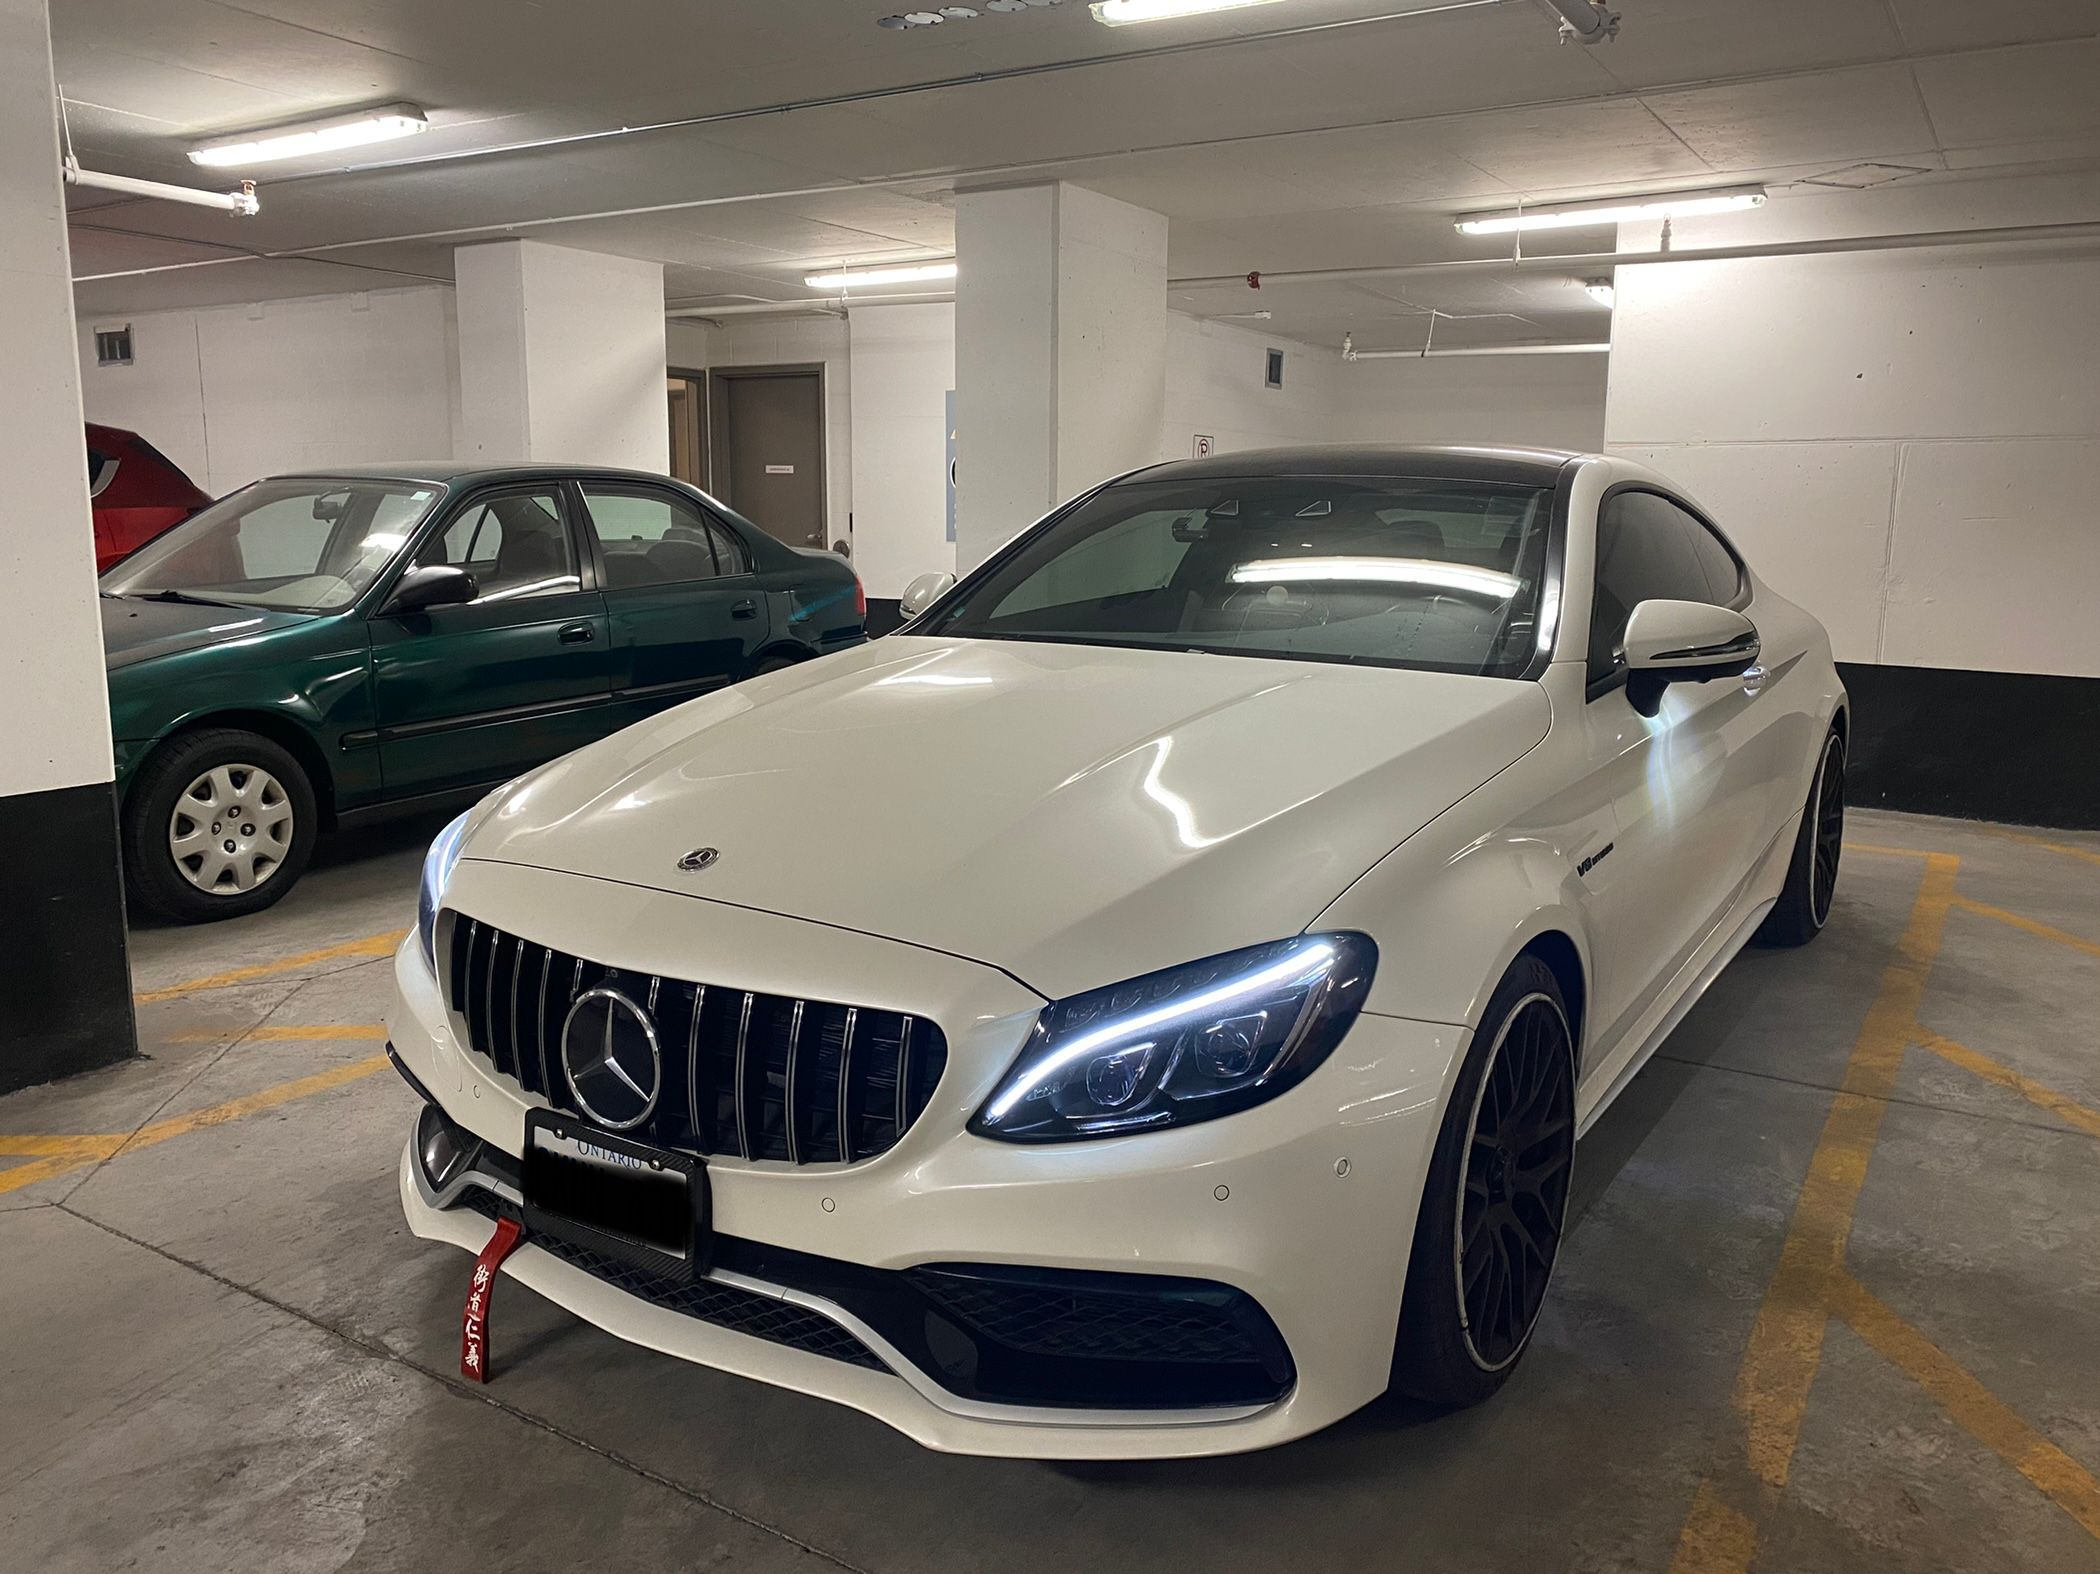 2018 Mercedes-Benz C-Class c63s coupe - INFOCAR - Toronto's Most Comprehensive New and Used Auto Trading Platform